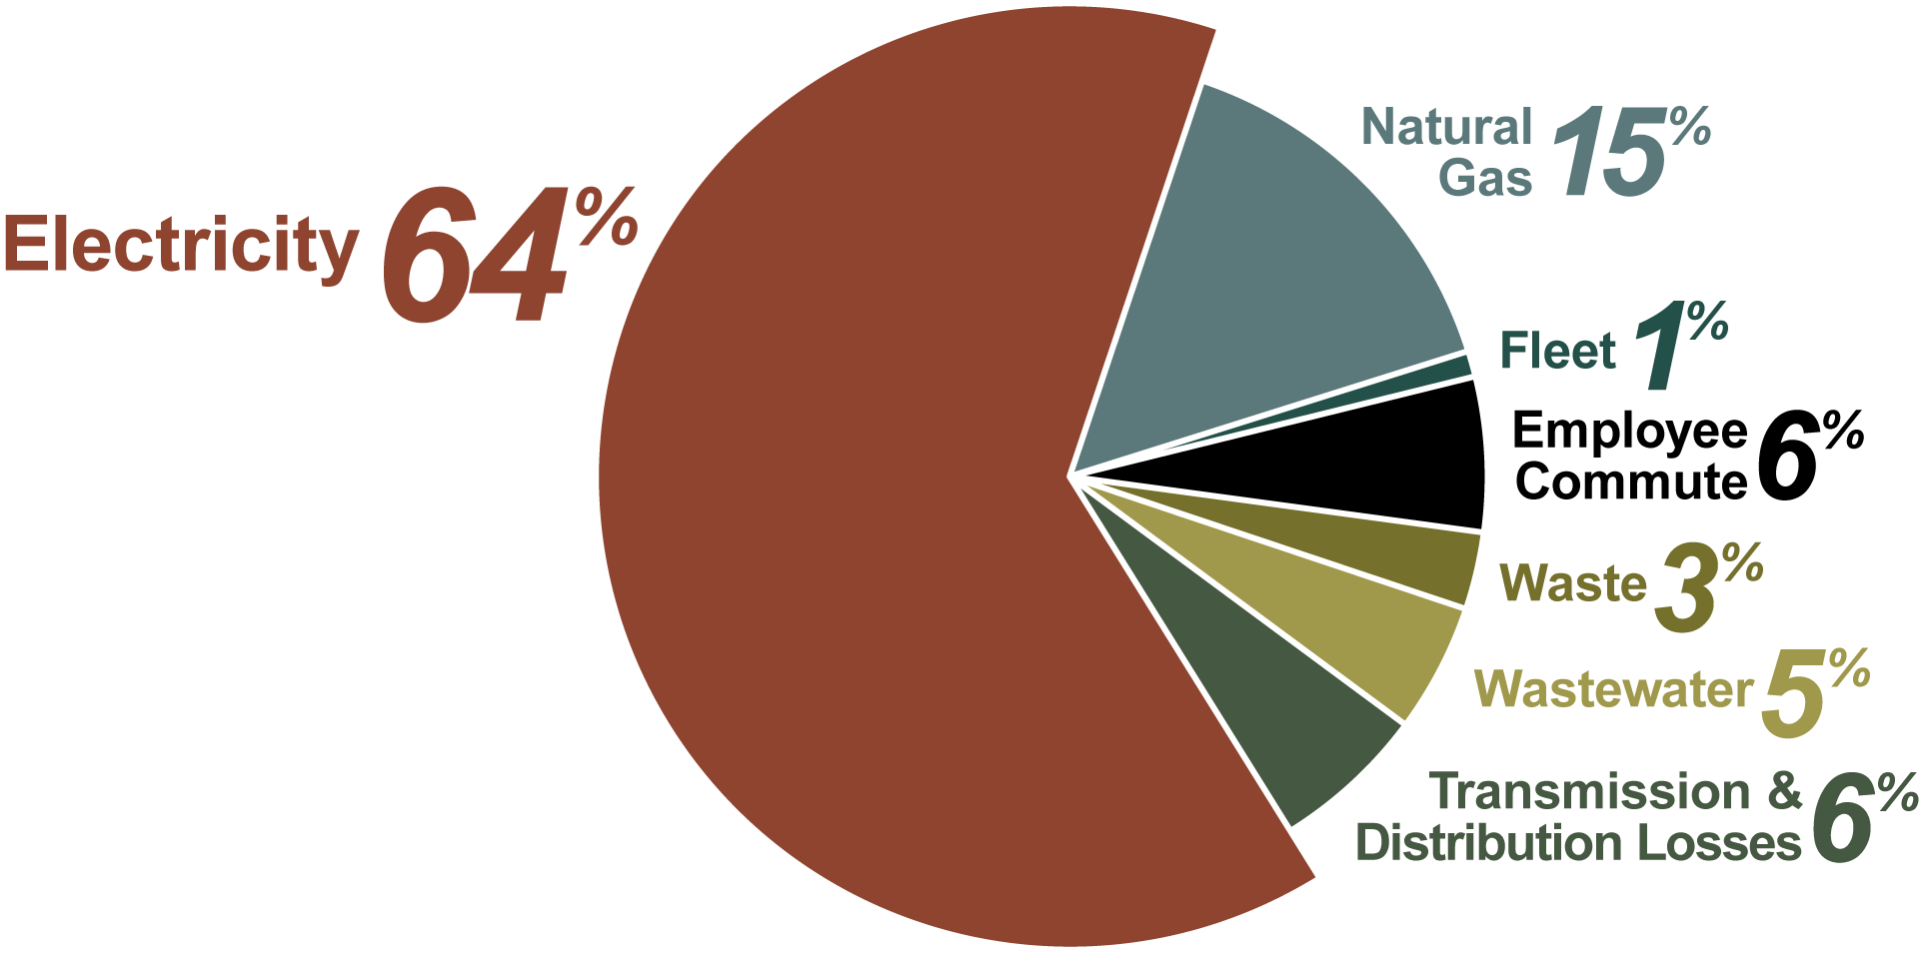 Pie chart showing 2014 City of Bend Greenhouse Gas Emissions source percentages. 64% electricity, 15% natural gas, 6% transmission & distribution losses, 6% employee commute, 5% wastewater, 3% waste and 1% fleet.